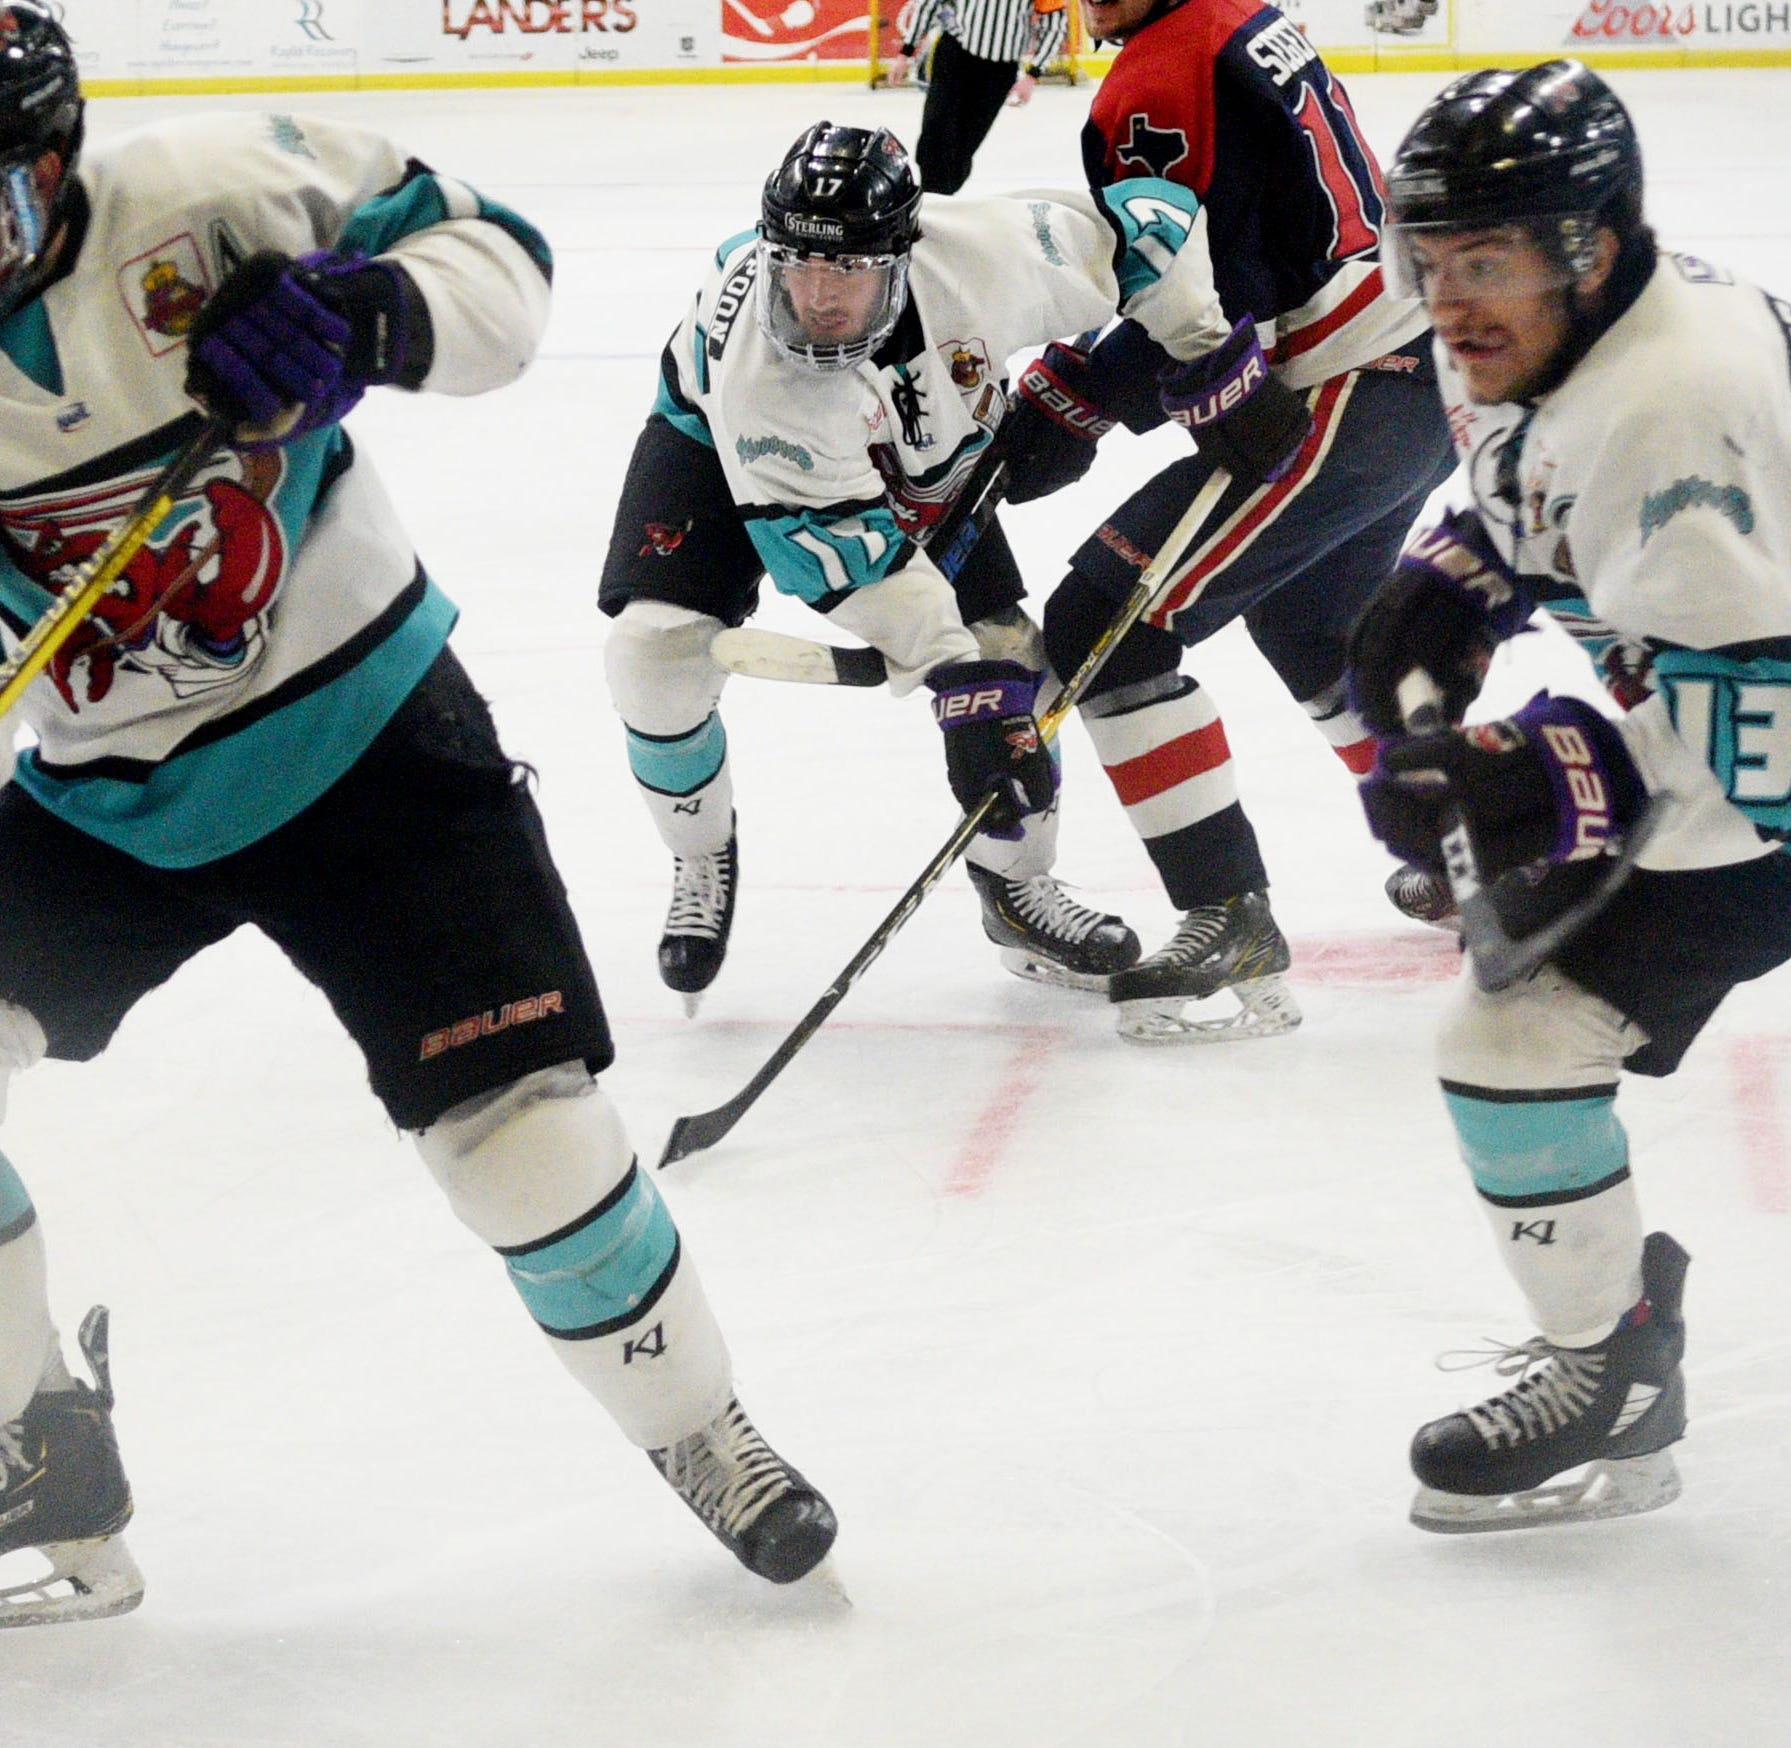 Mudbugs' 'agreement' led to Thursday's season-saving victory